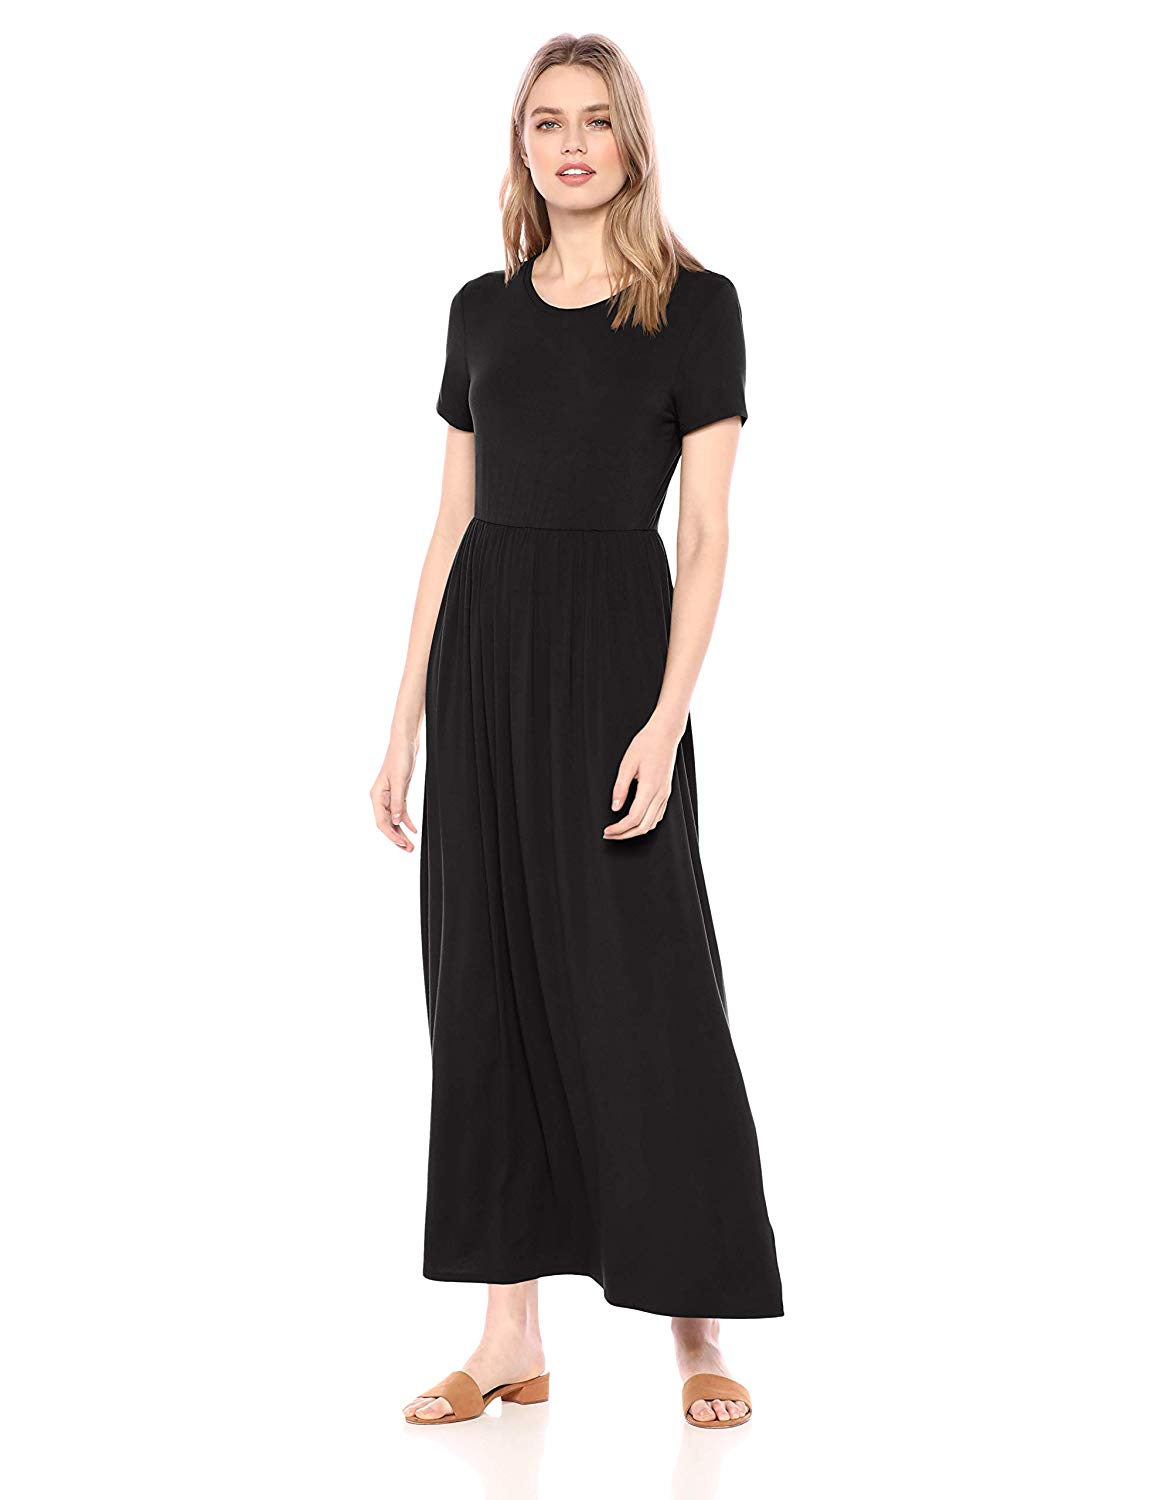 15 Stylish Dresses From Amazon Women's Short-Sleeve Waisted Maxi Dress